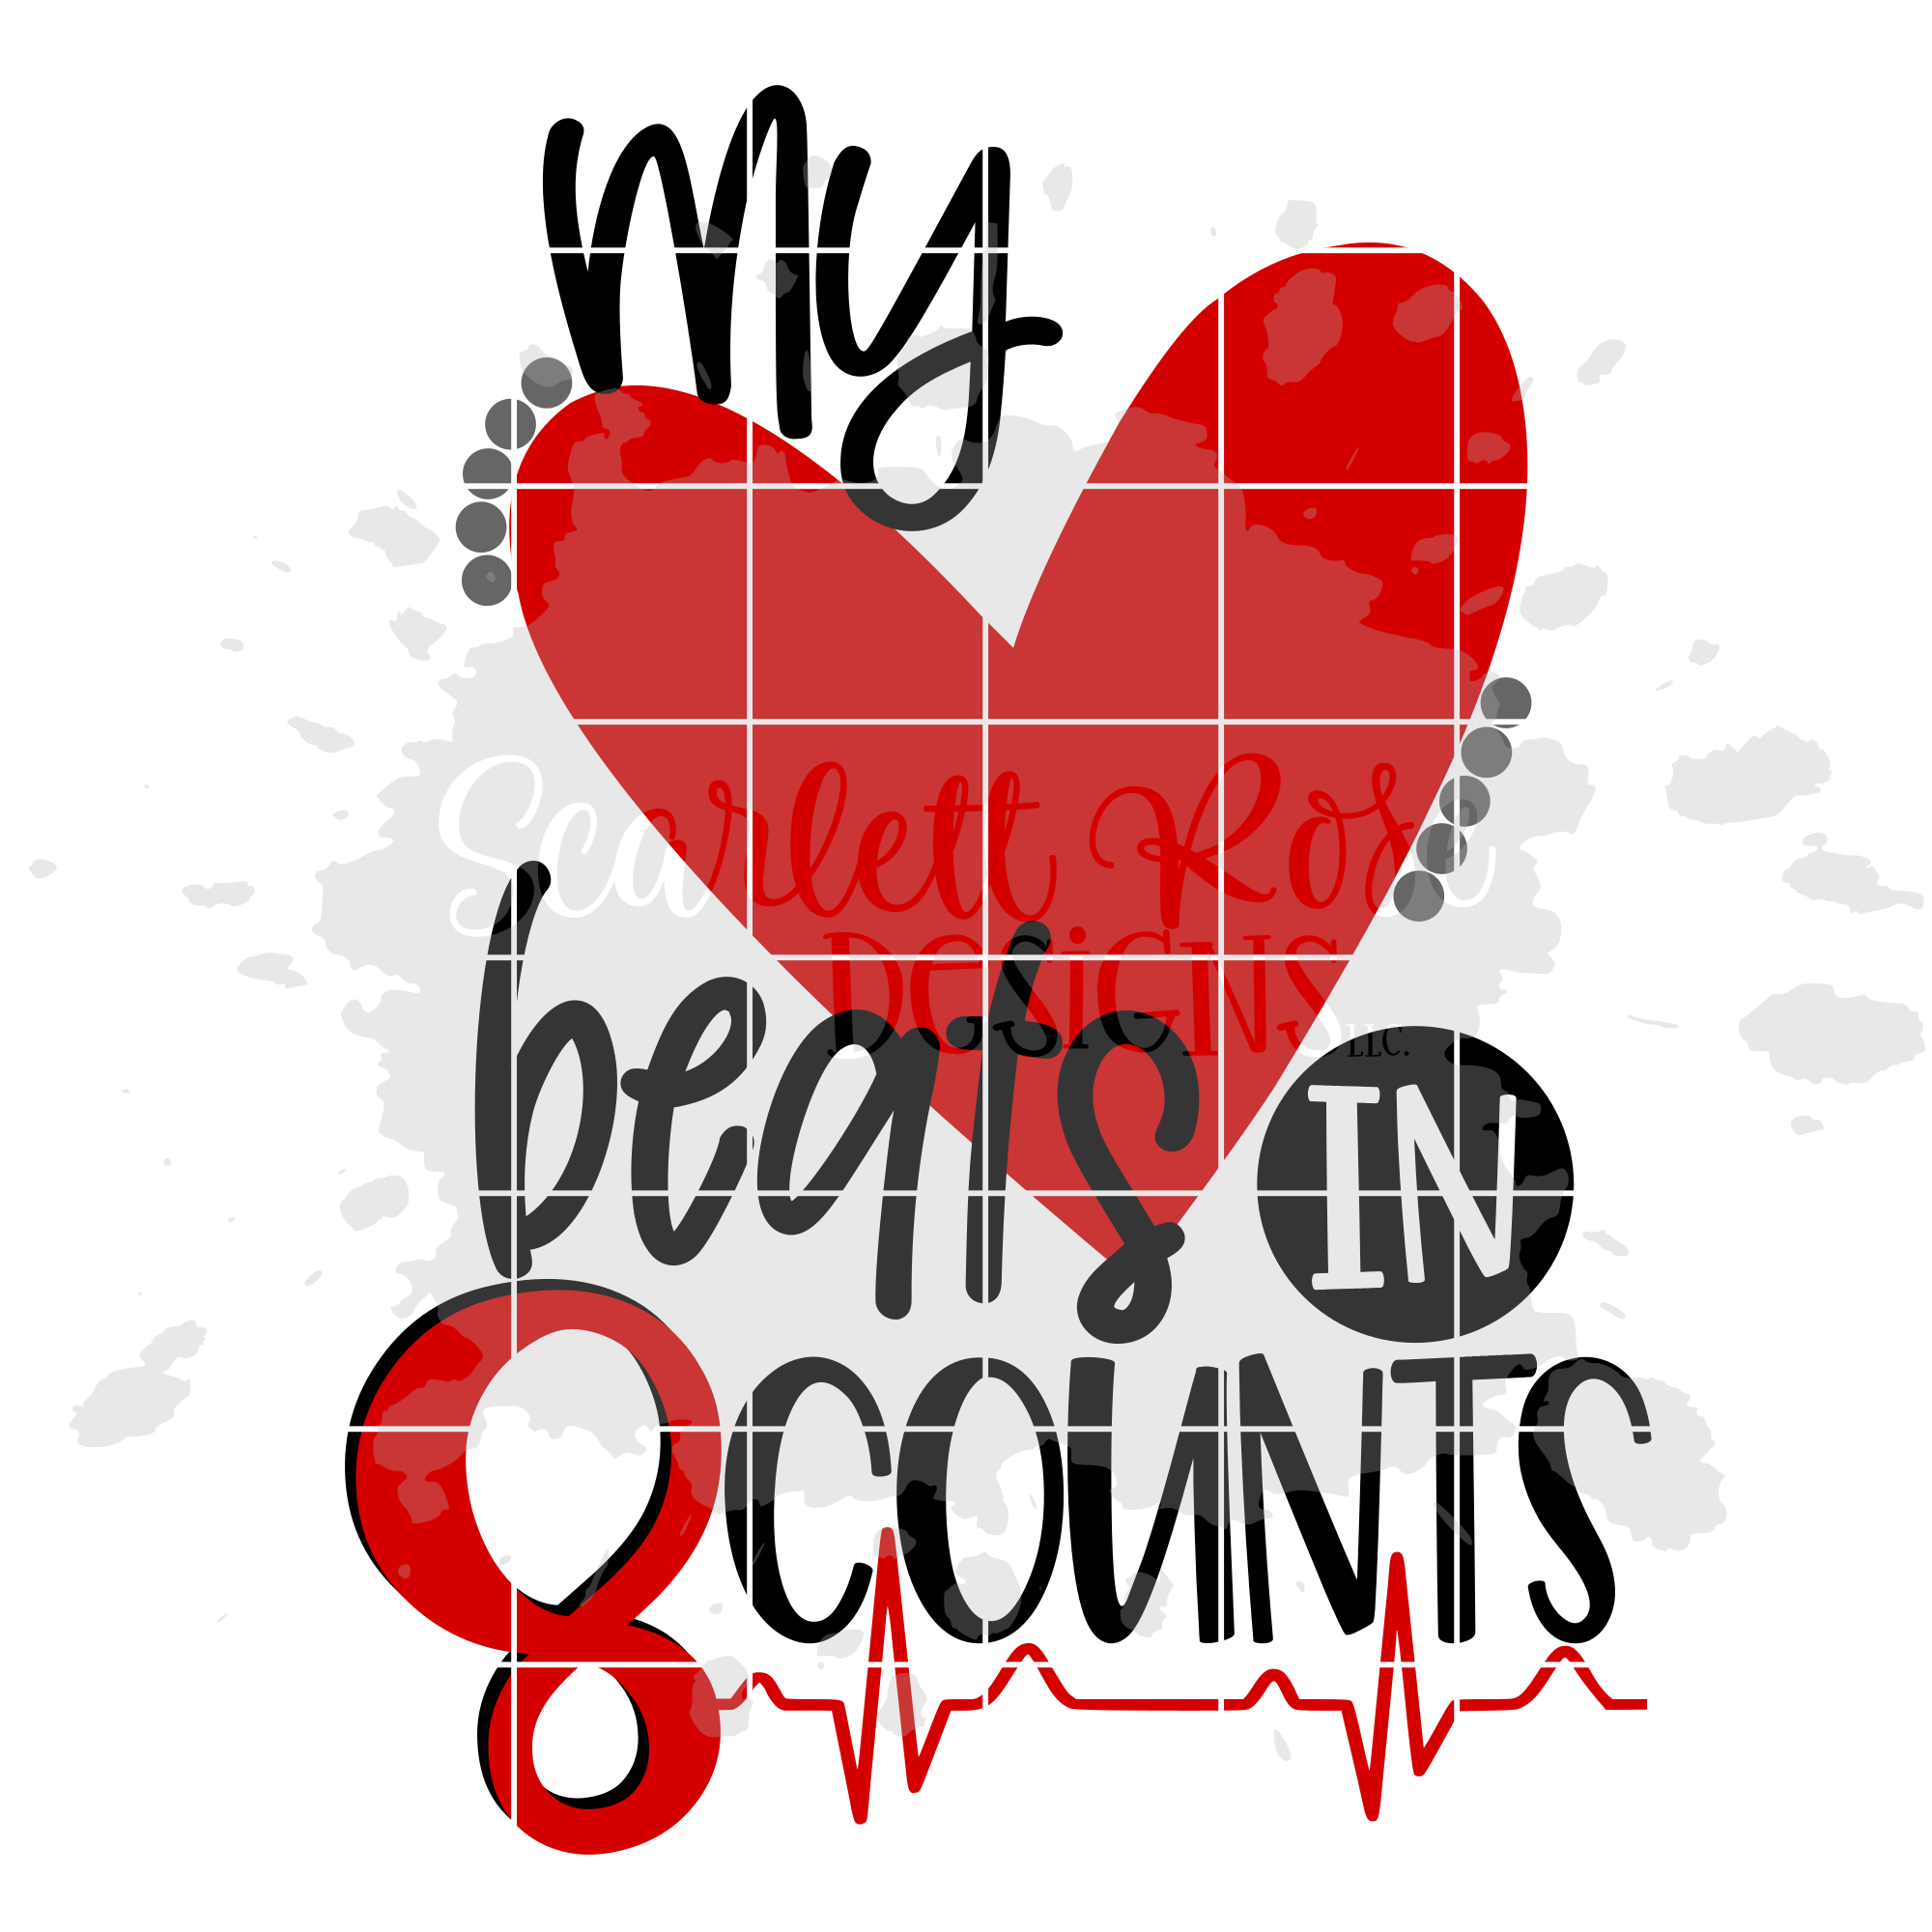 My Heart Beats In 8 Counts